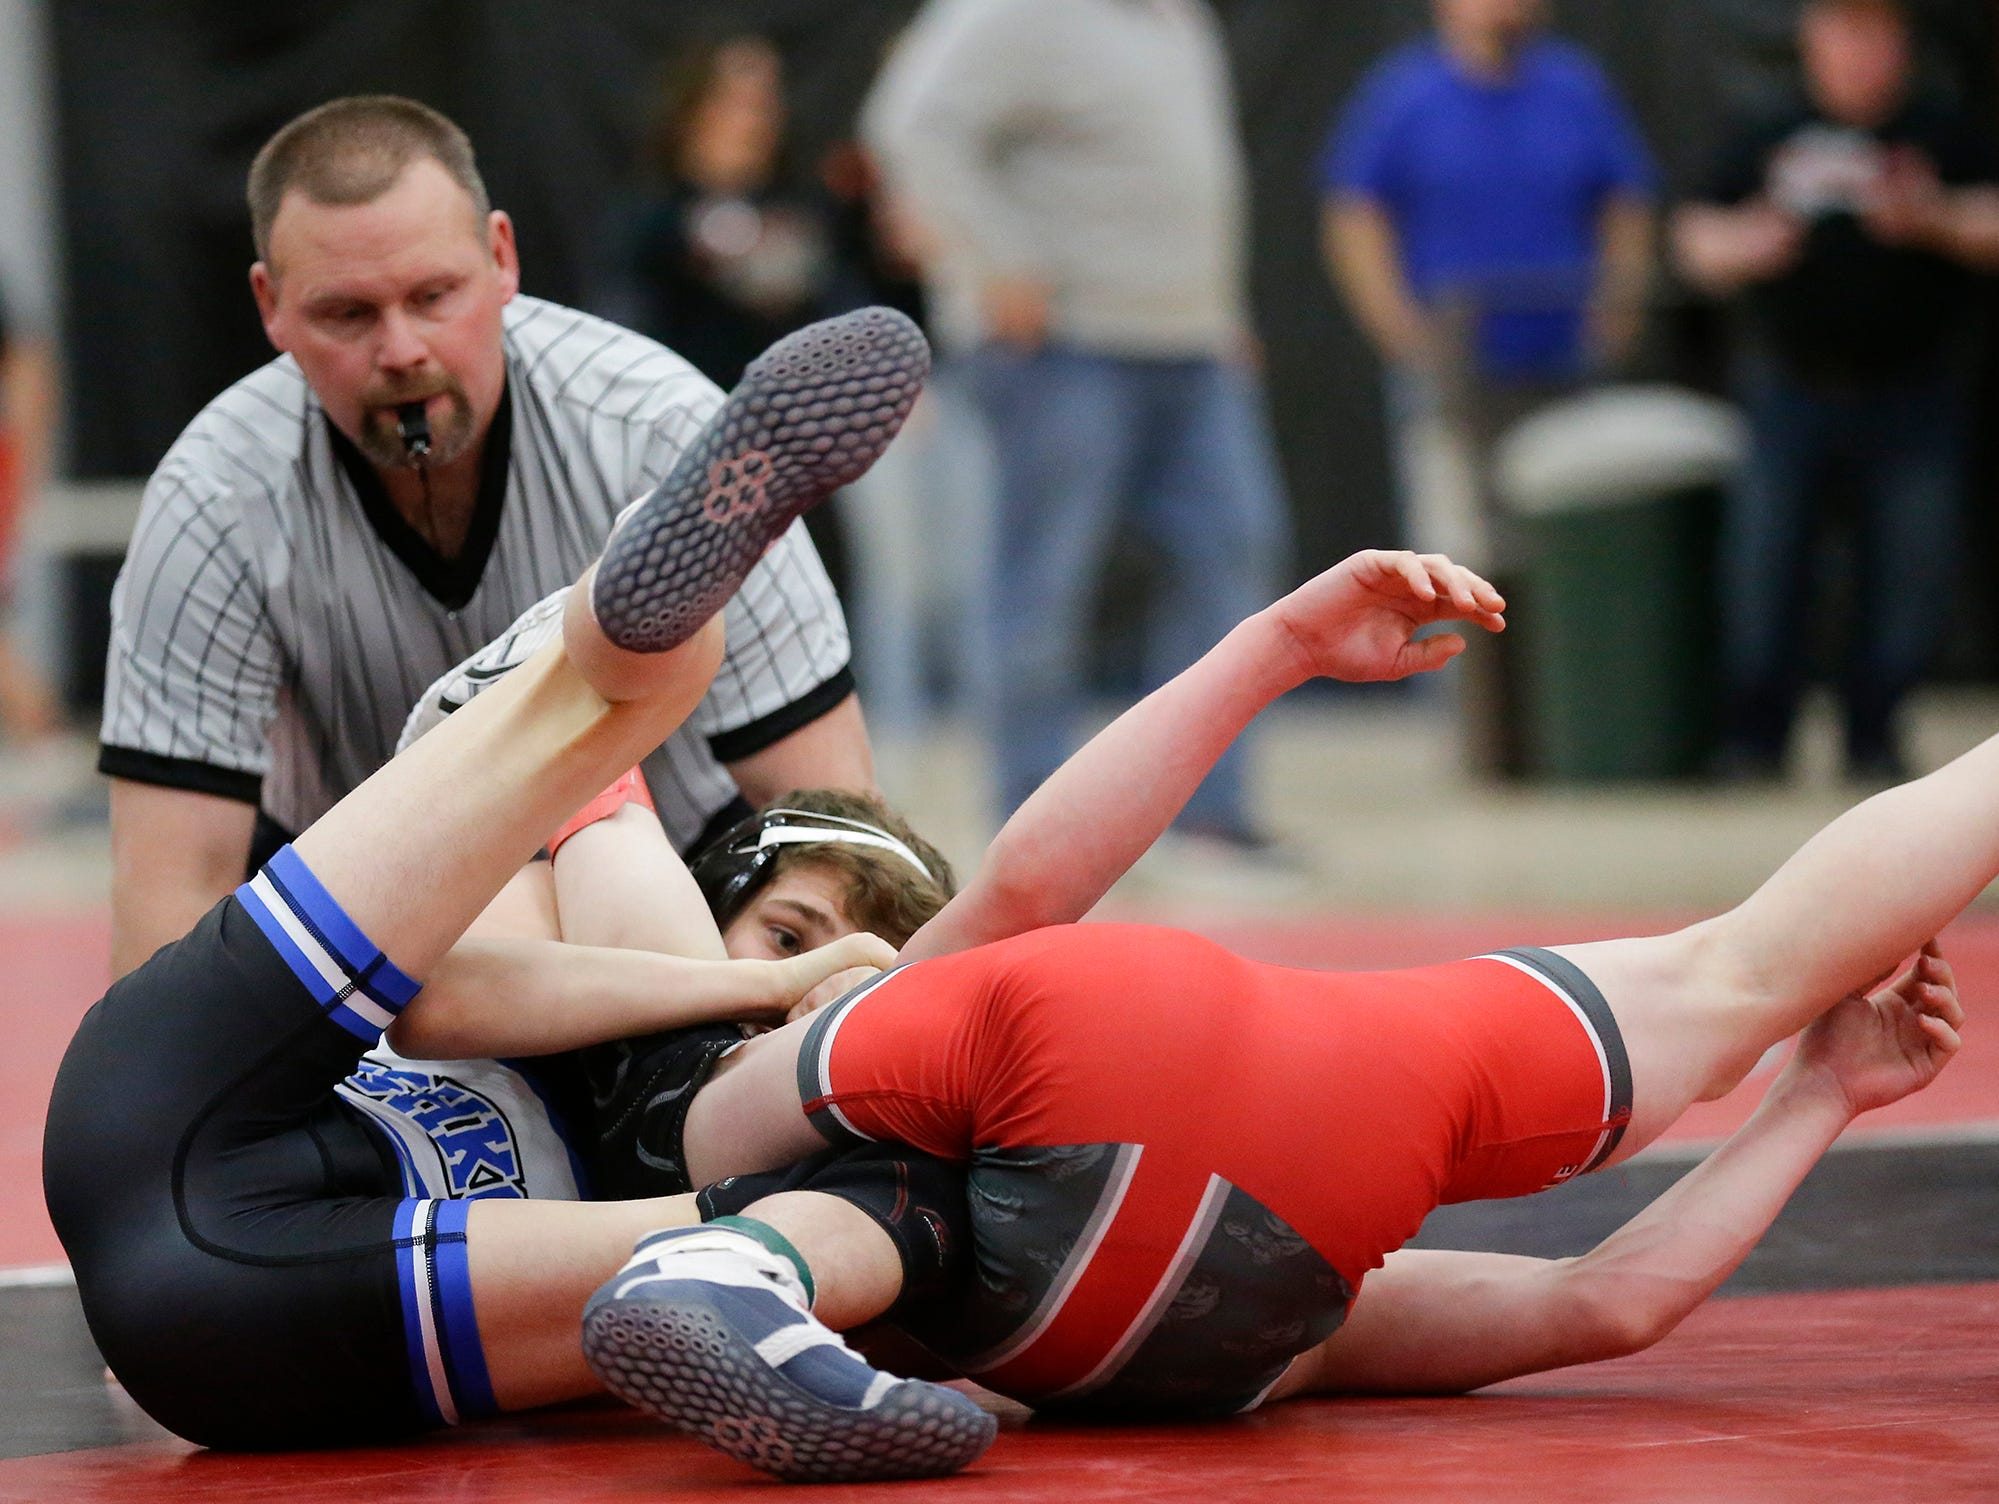 Oshkosh West High School's Alec Hunter wrestles Hortonville High School's Austin Spindler in a 106-pound match during the Fox Valley Association wrestling championship meet held in Fond du Lac, Saturday, Feb. 2, 2019. Hunter won the match by a pin.